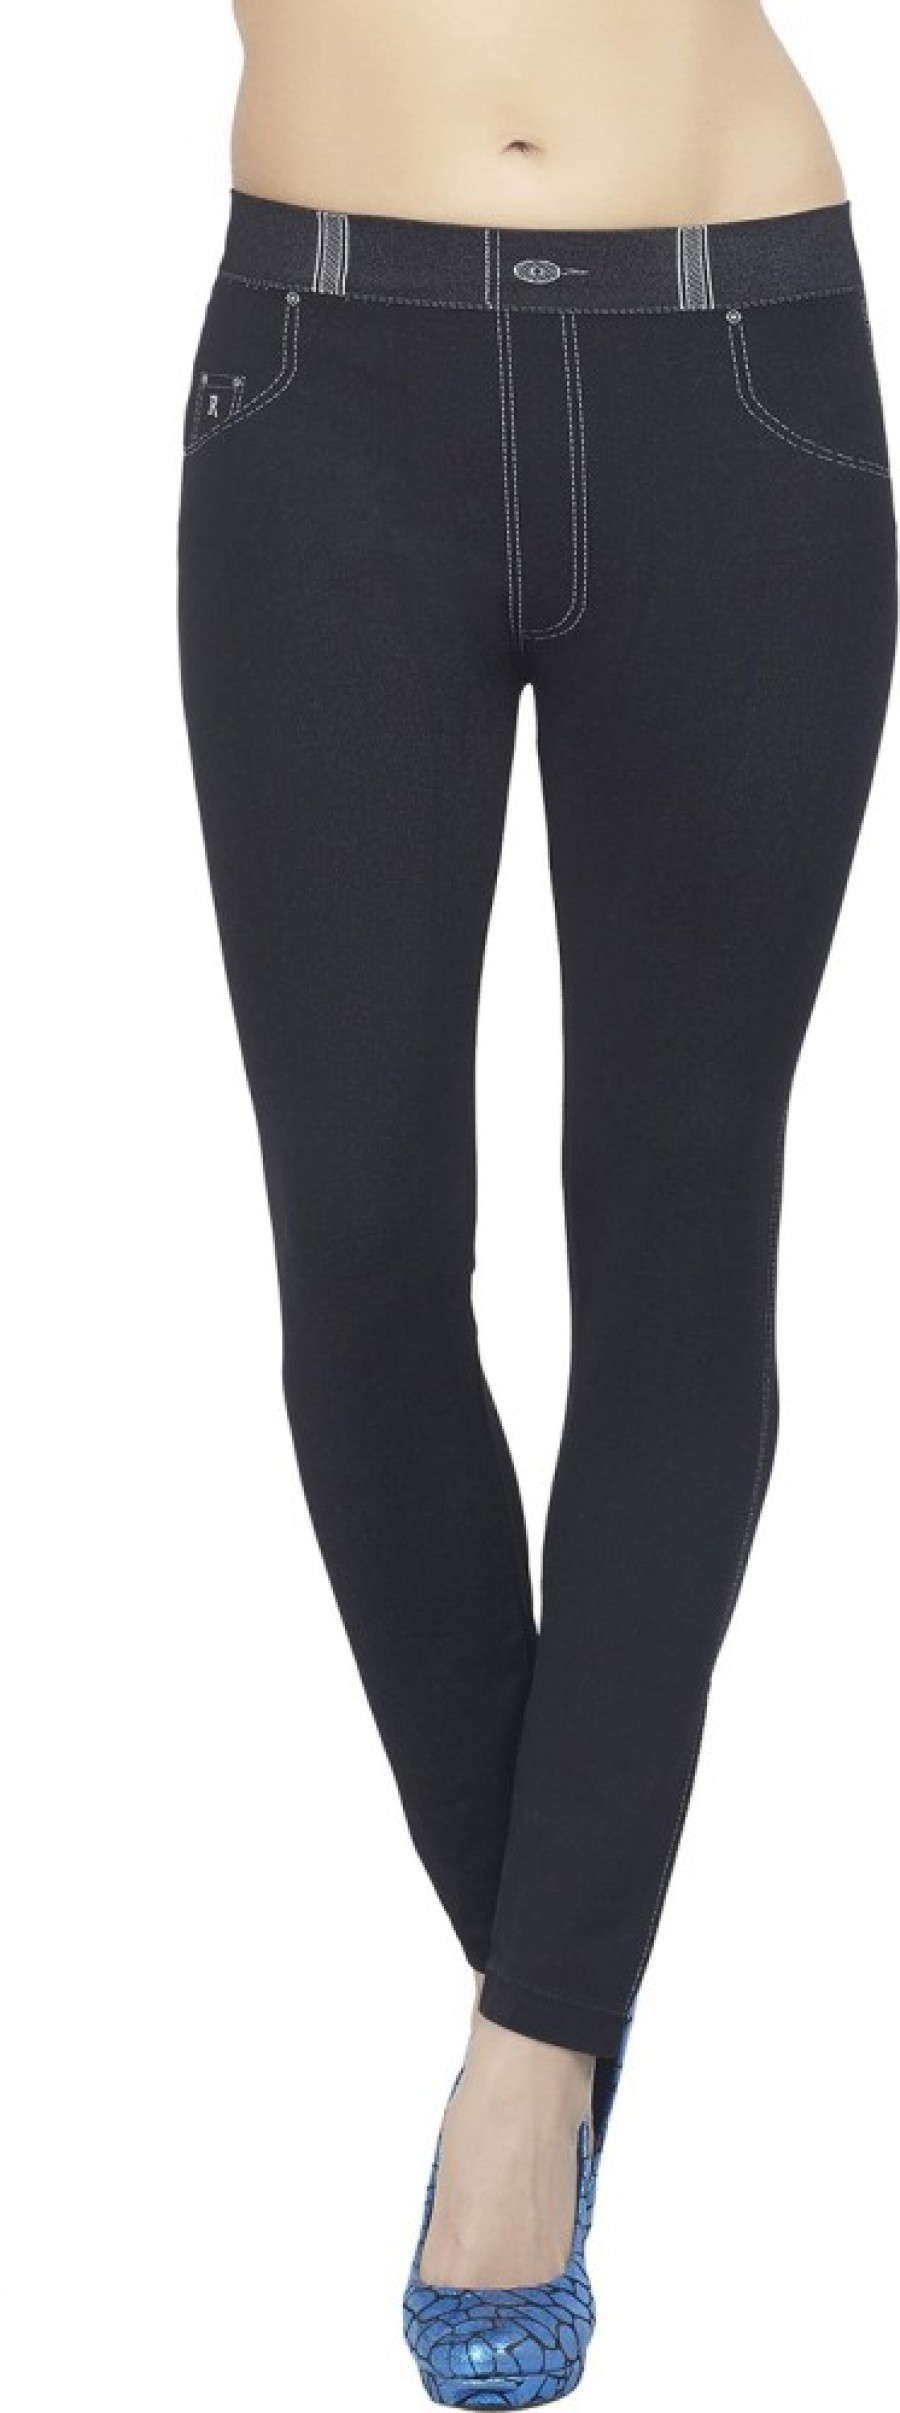 Buy Bellafonte Women Black Jeggings Online